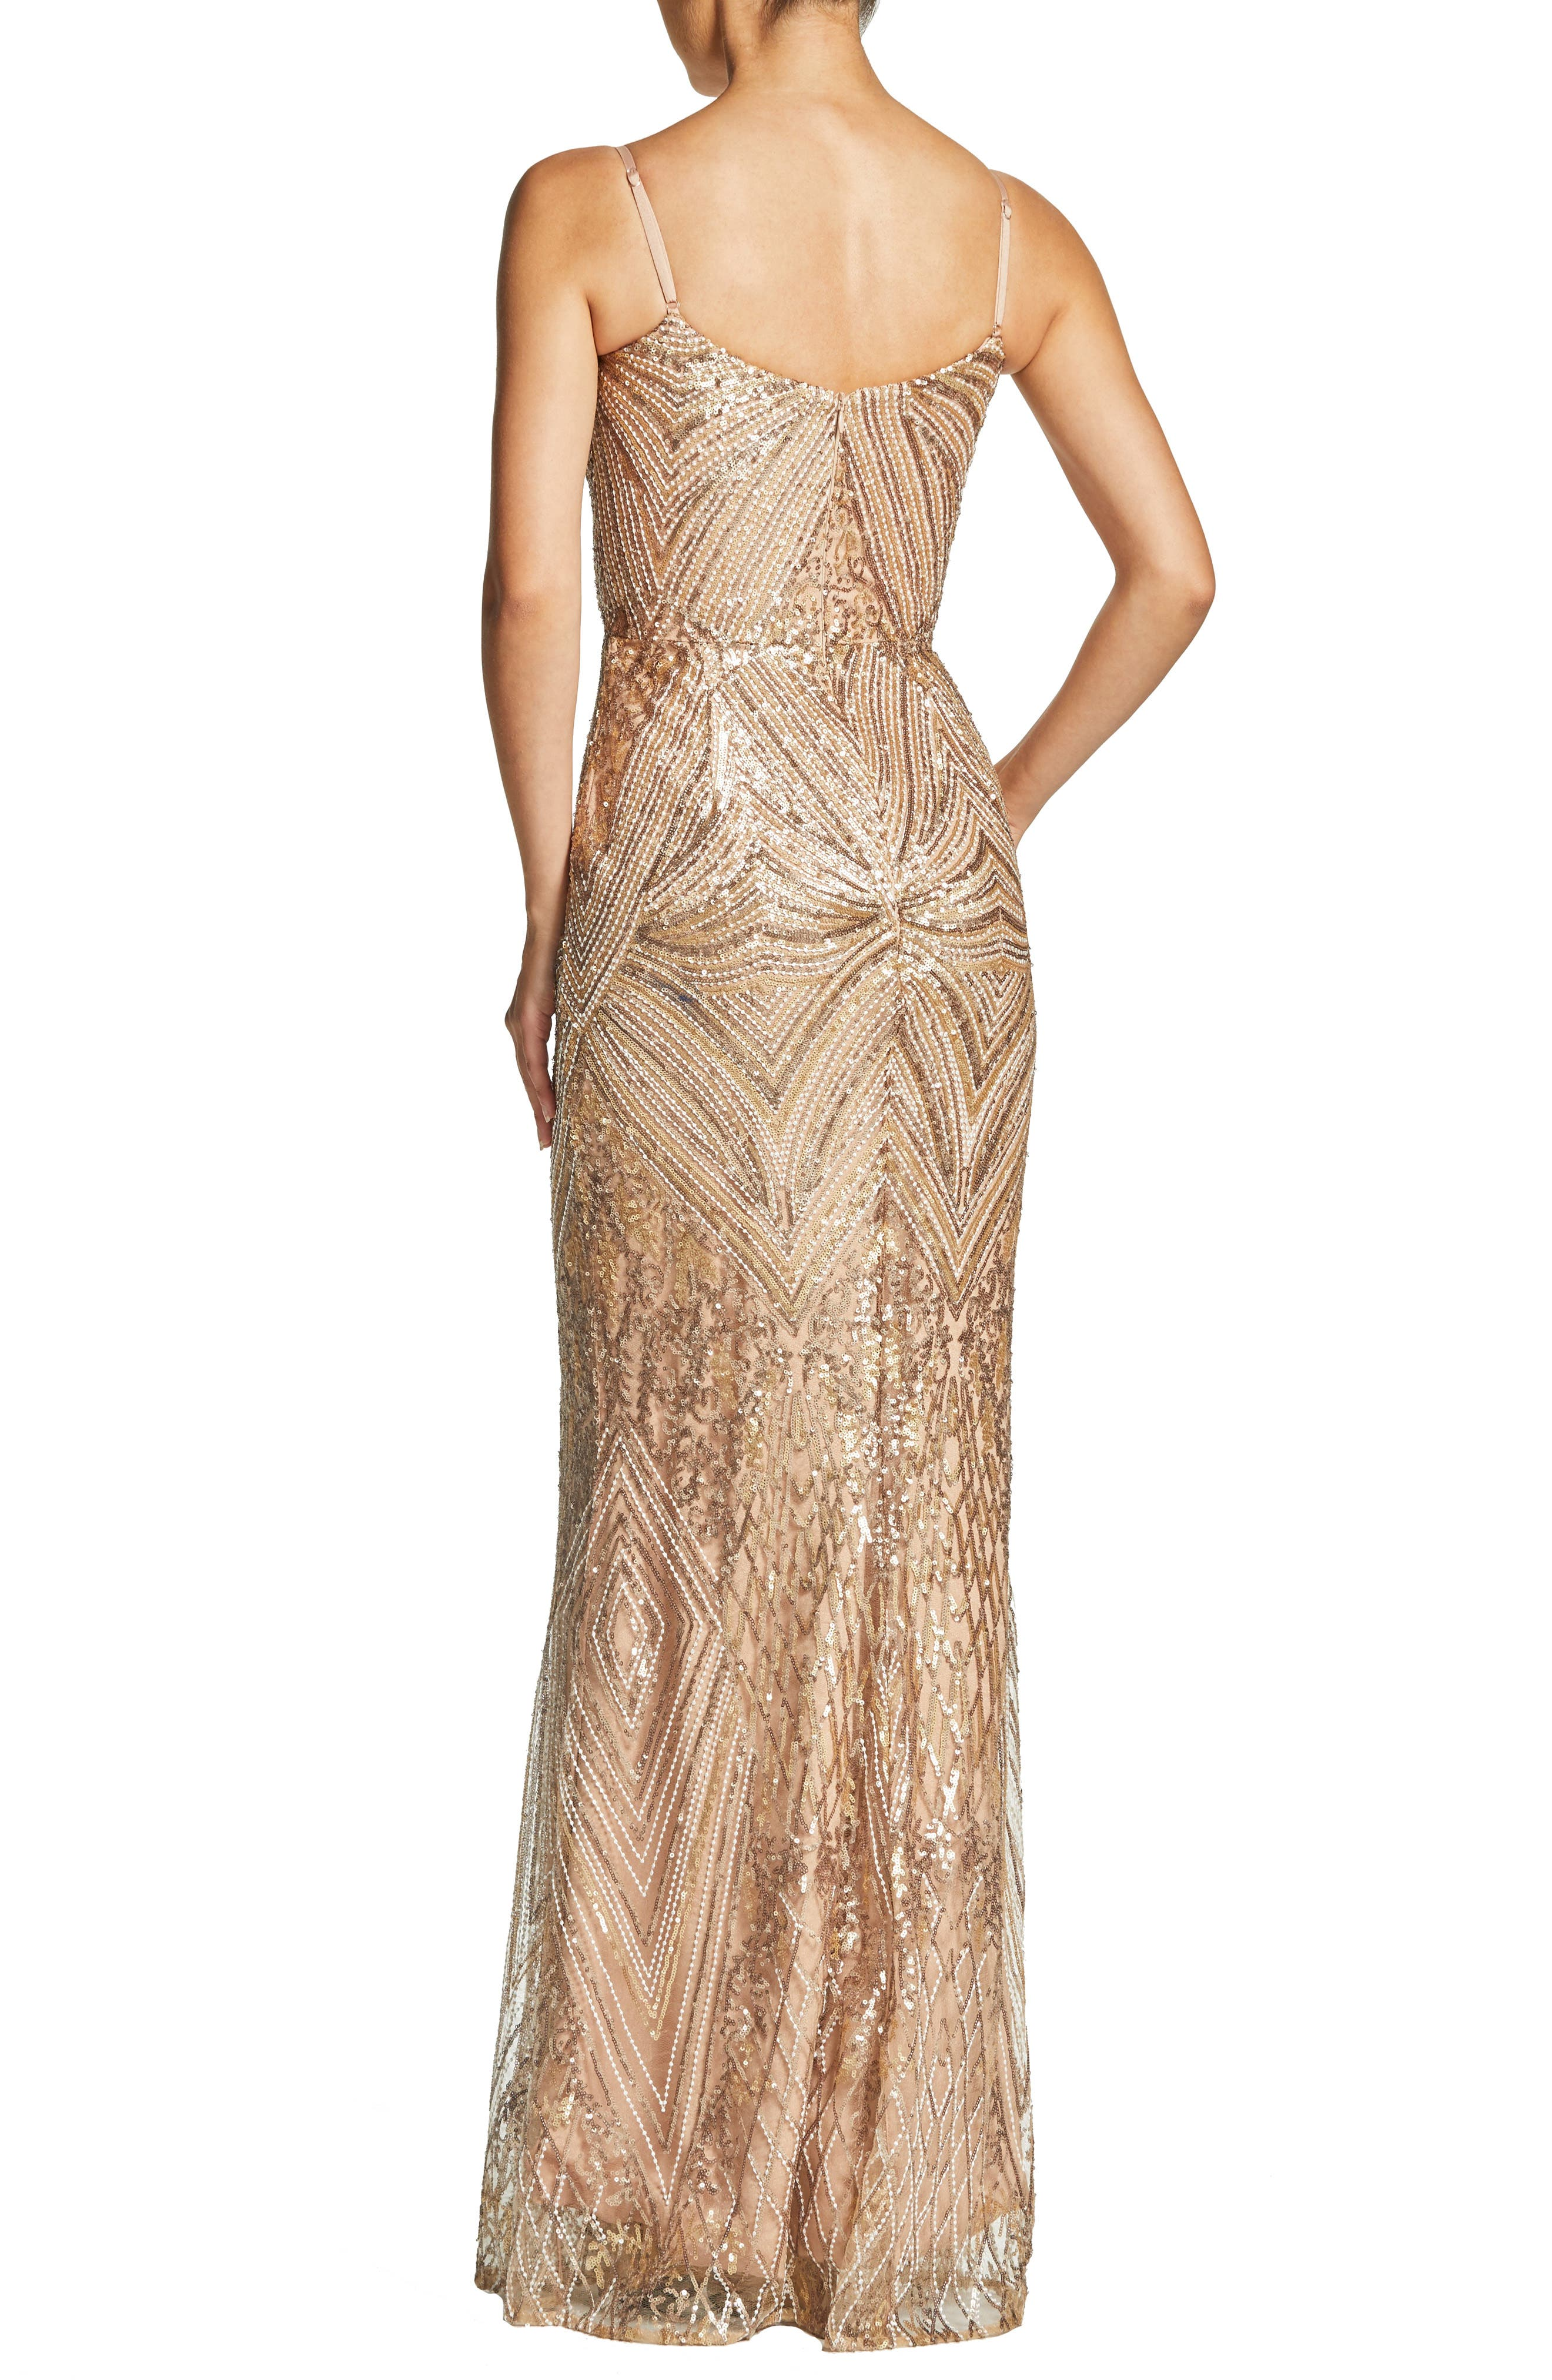 DRESS THE POPULATION, Mara Art Deco Sequin Trumpet Gown, Alternate thumbnail 2, color, GOLD/ BRASS